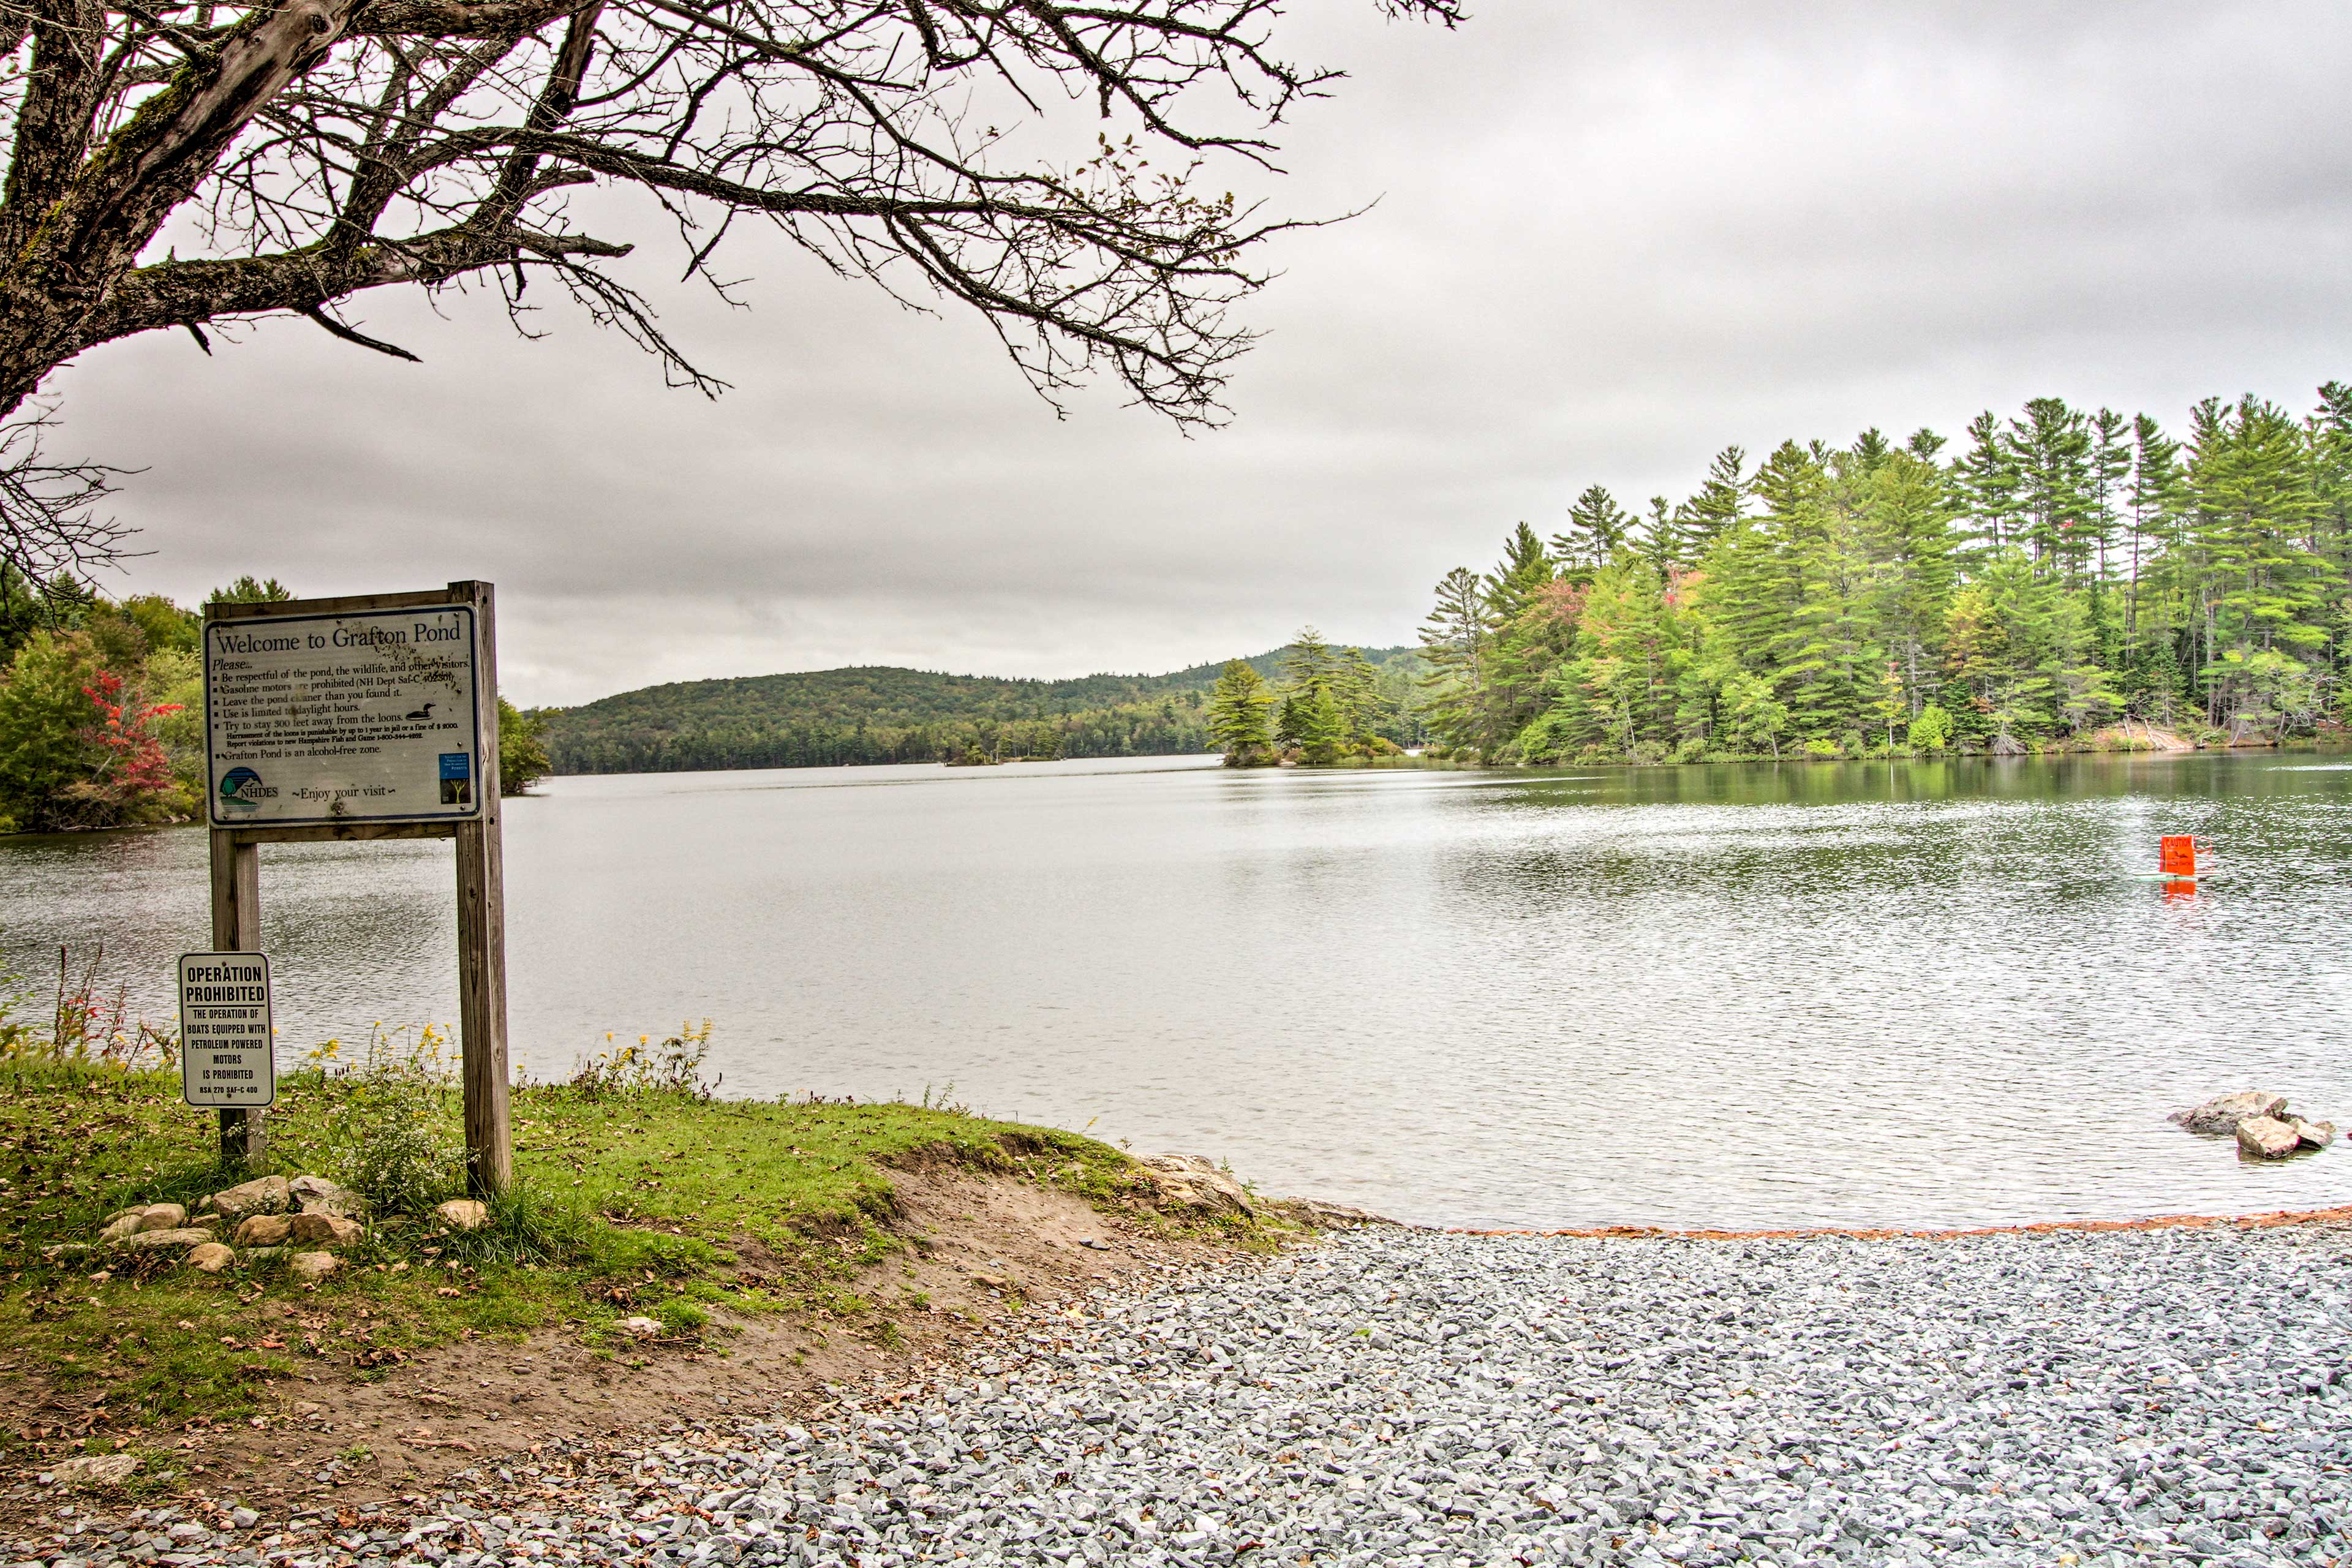 Look forward to kayaking at Grafton Pond, minutes from the home.